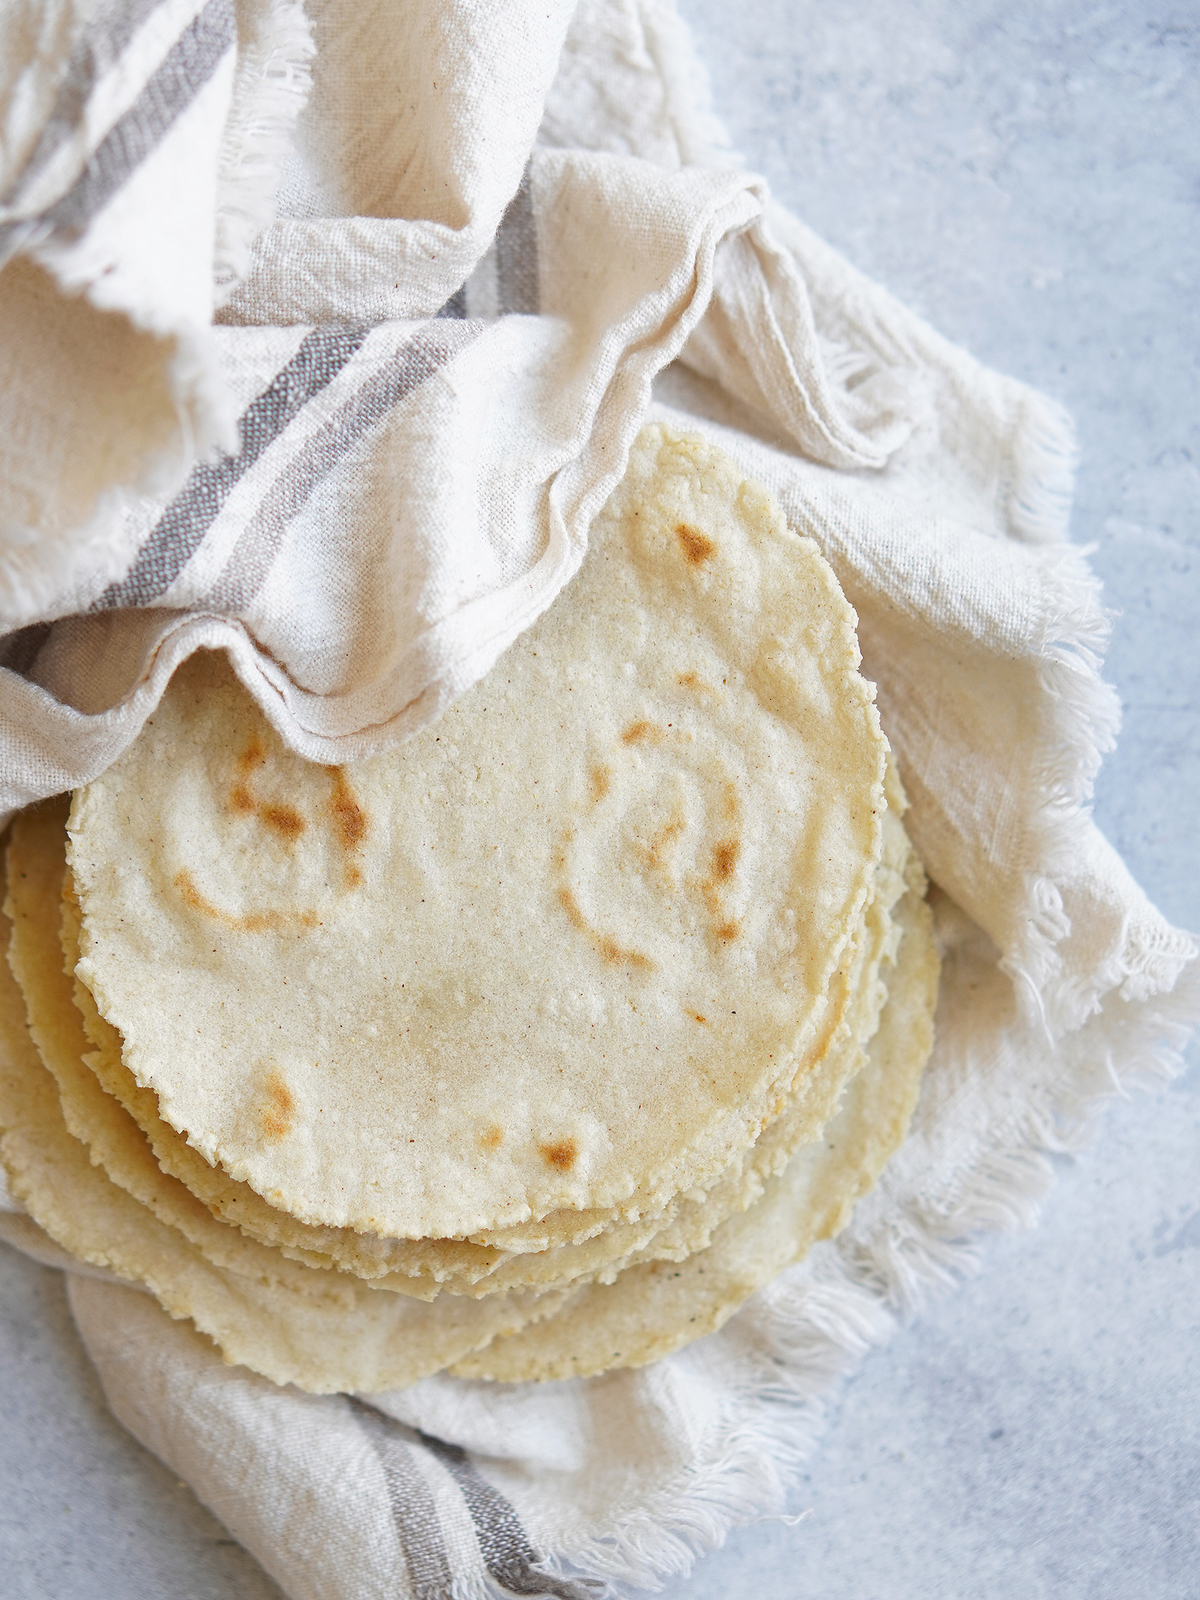 Tortillas inside a kitchen towel